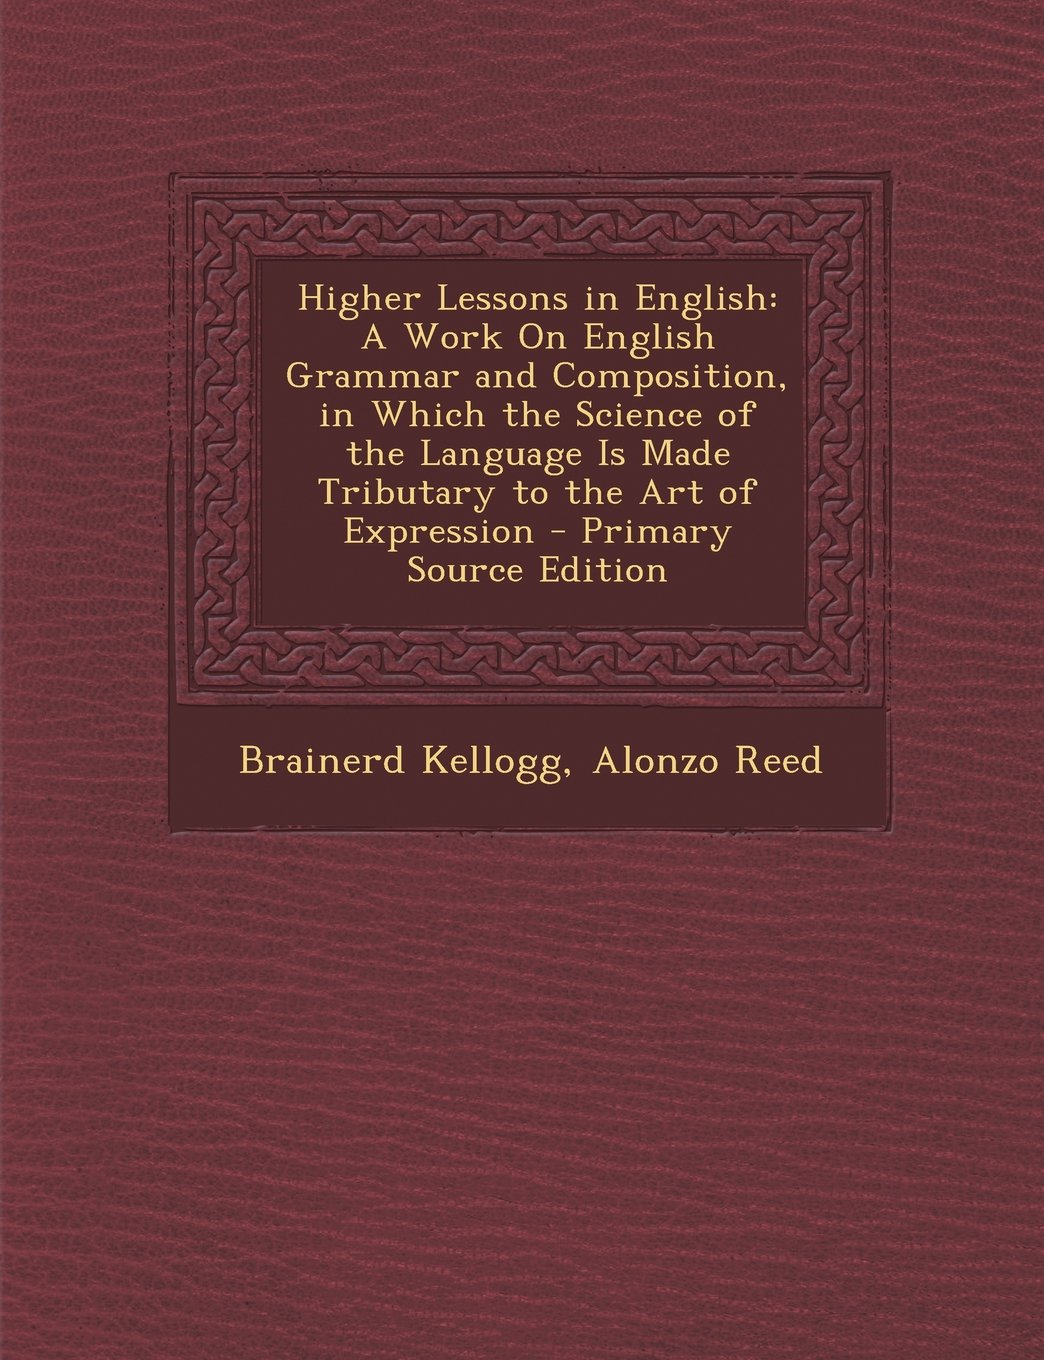 Download Higher Lessons in English: A Work on English Grammar and Composition, in Which the Science of the Language Is Made Tributary to the Art of Expres pdf